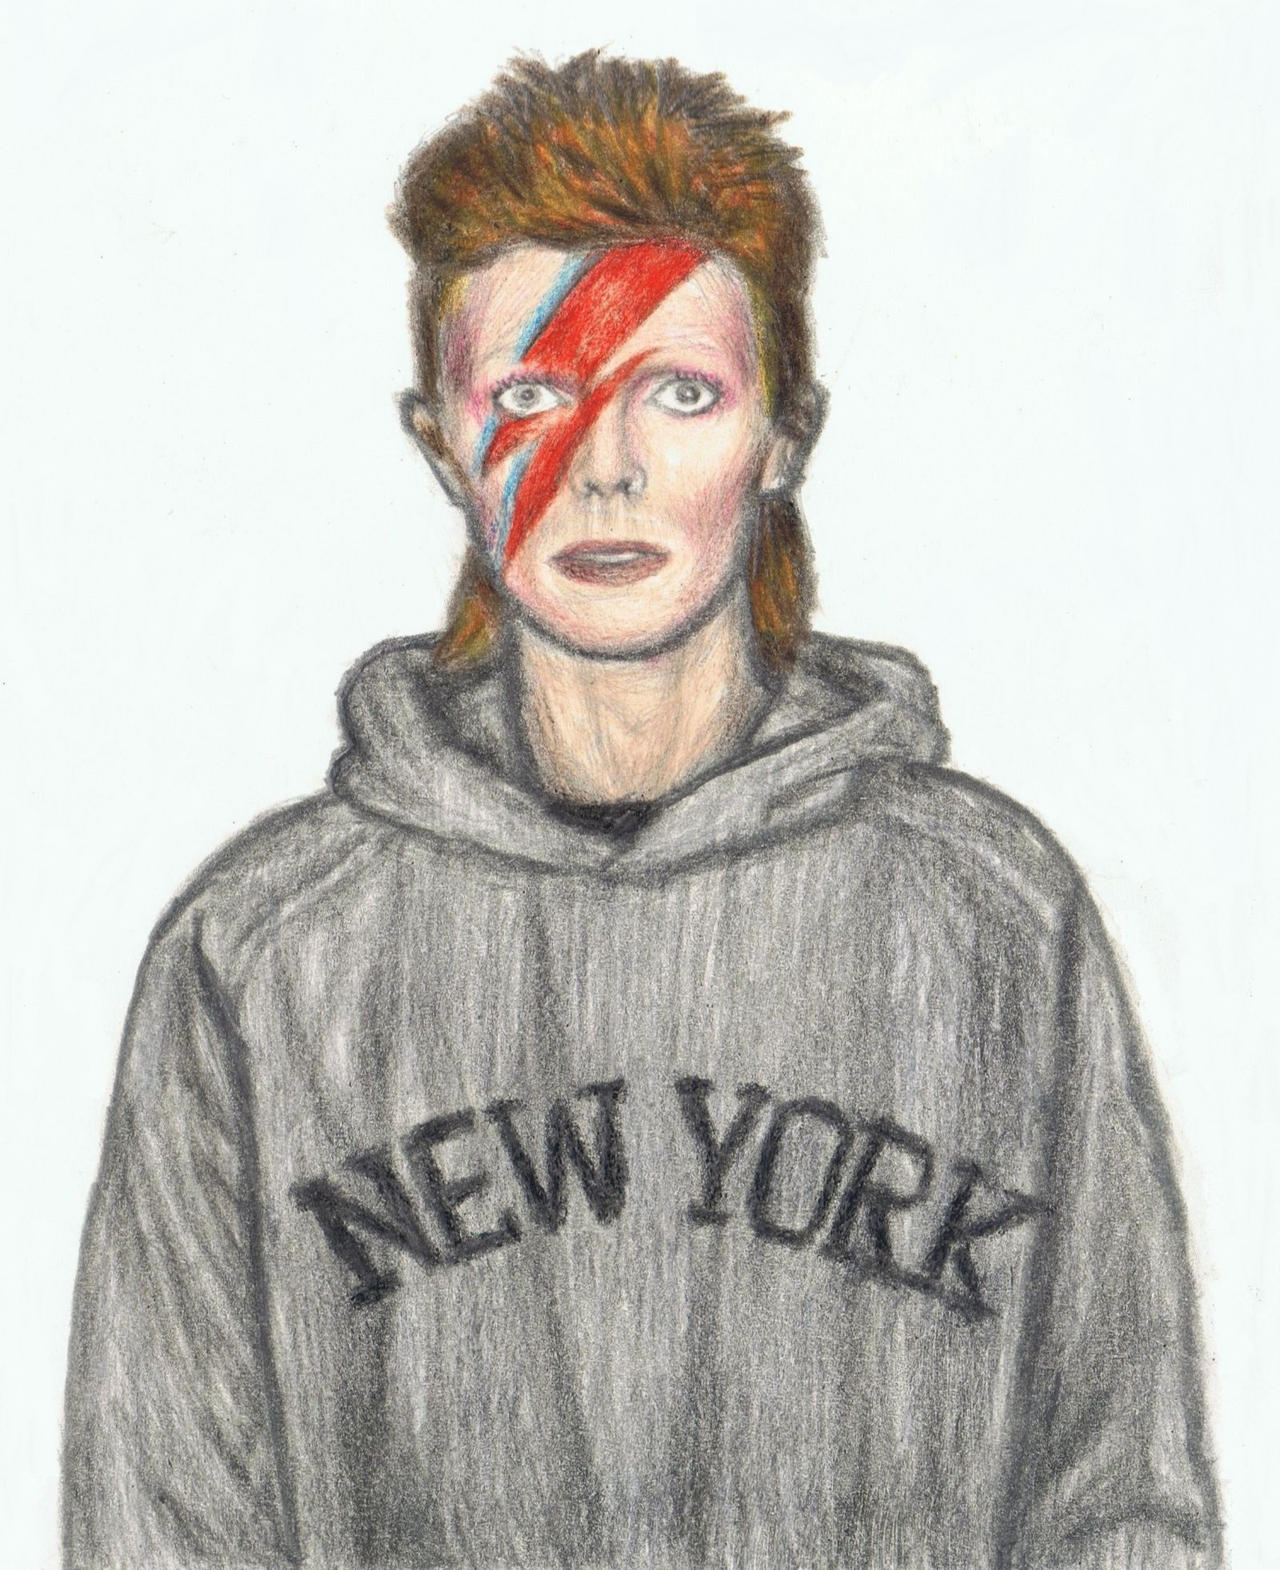 Aladdin Sane in hoodie by gagambo